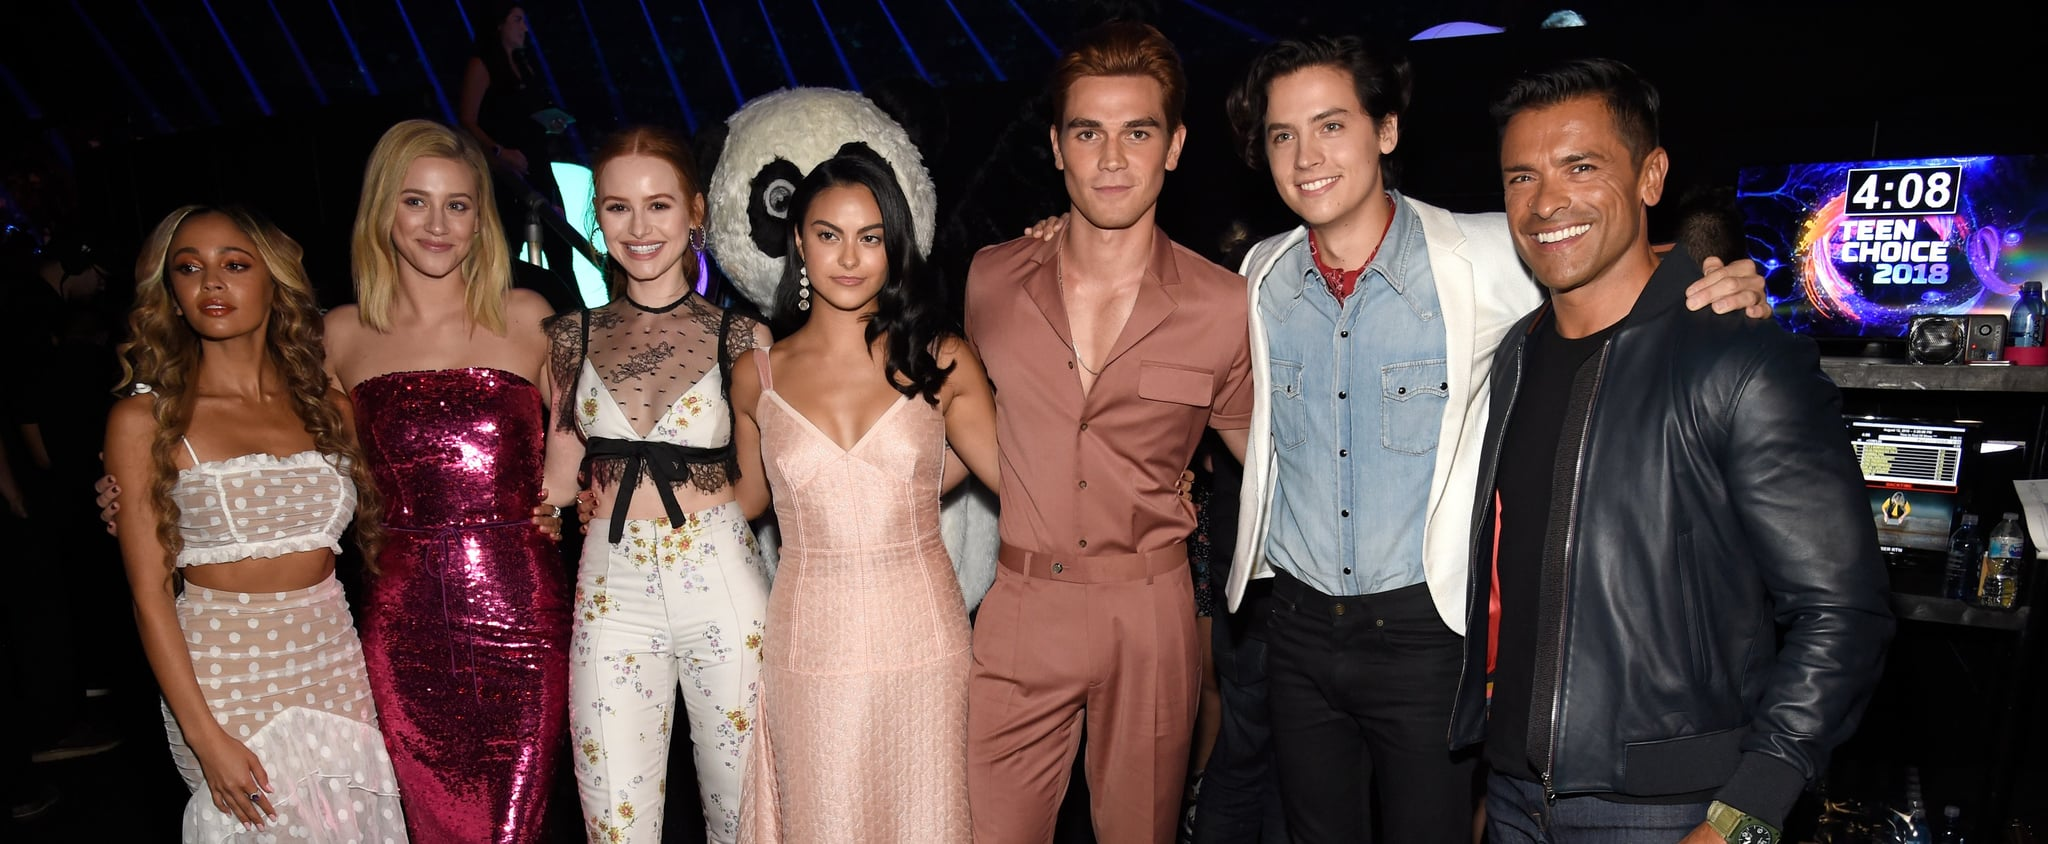 Best Pictures From the 2018 Teen Choice Awards